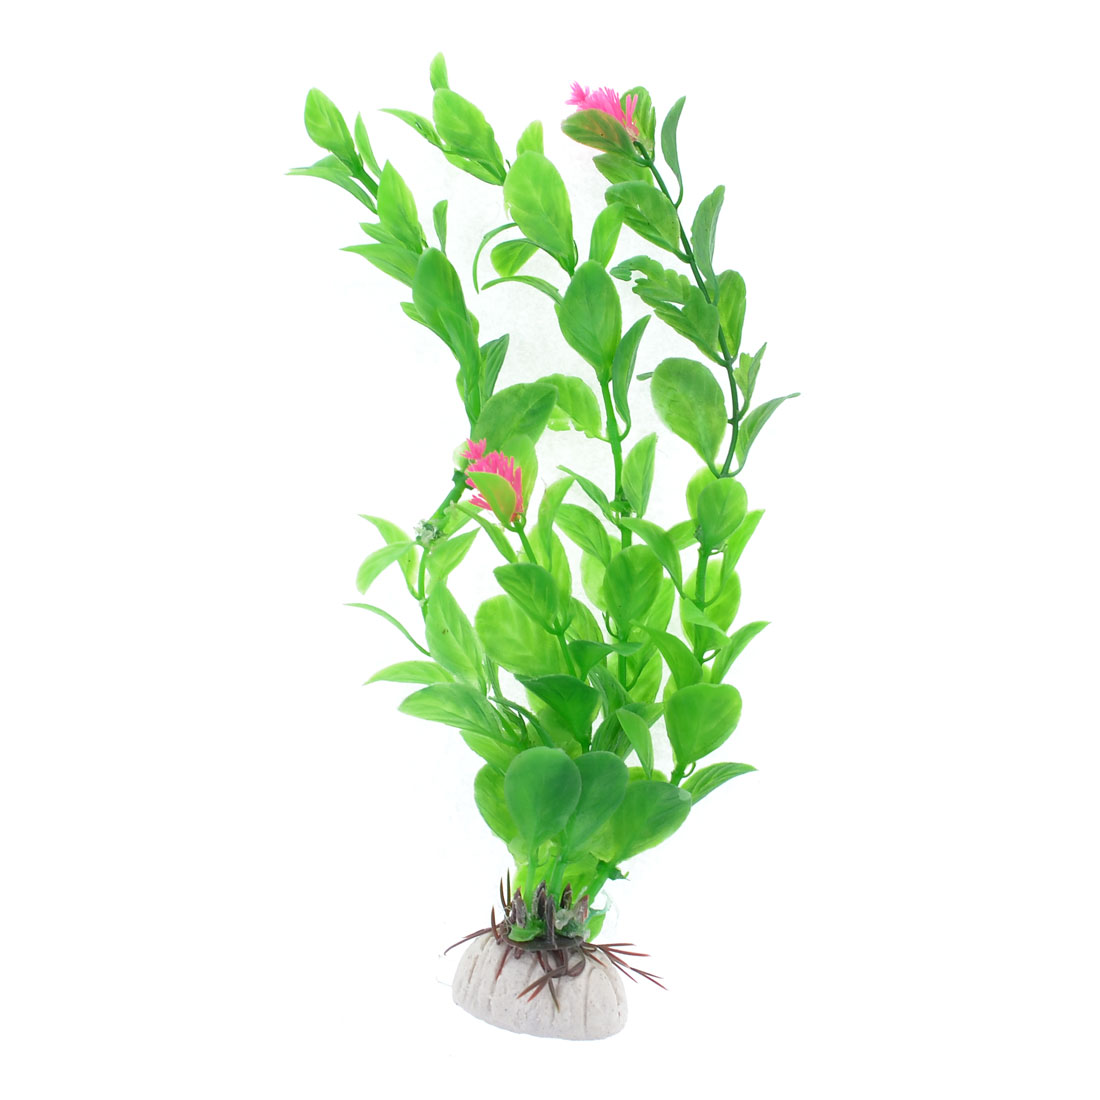 "Fish Tank Aquarium Decor Pink Flower Plastic Green Grass Plant 7"" Height"